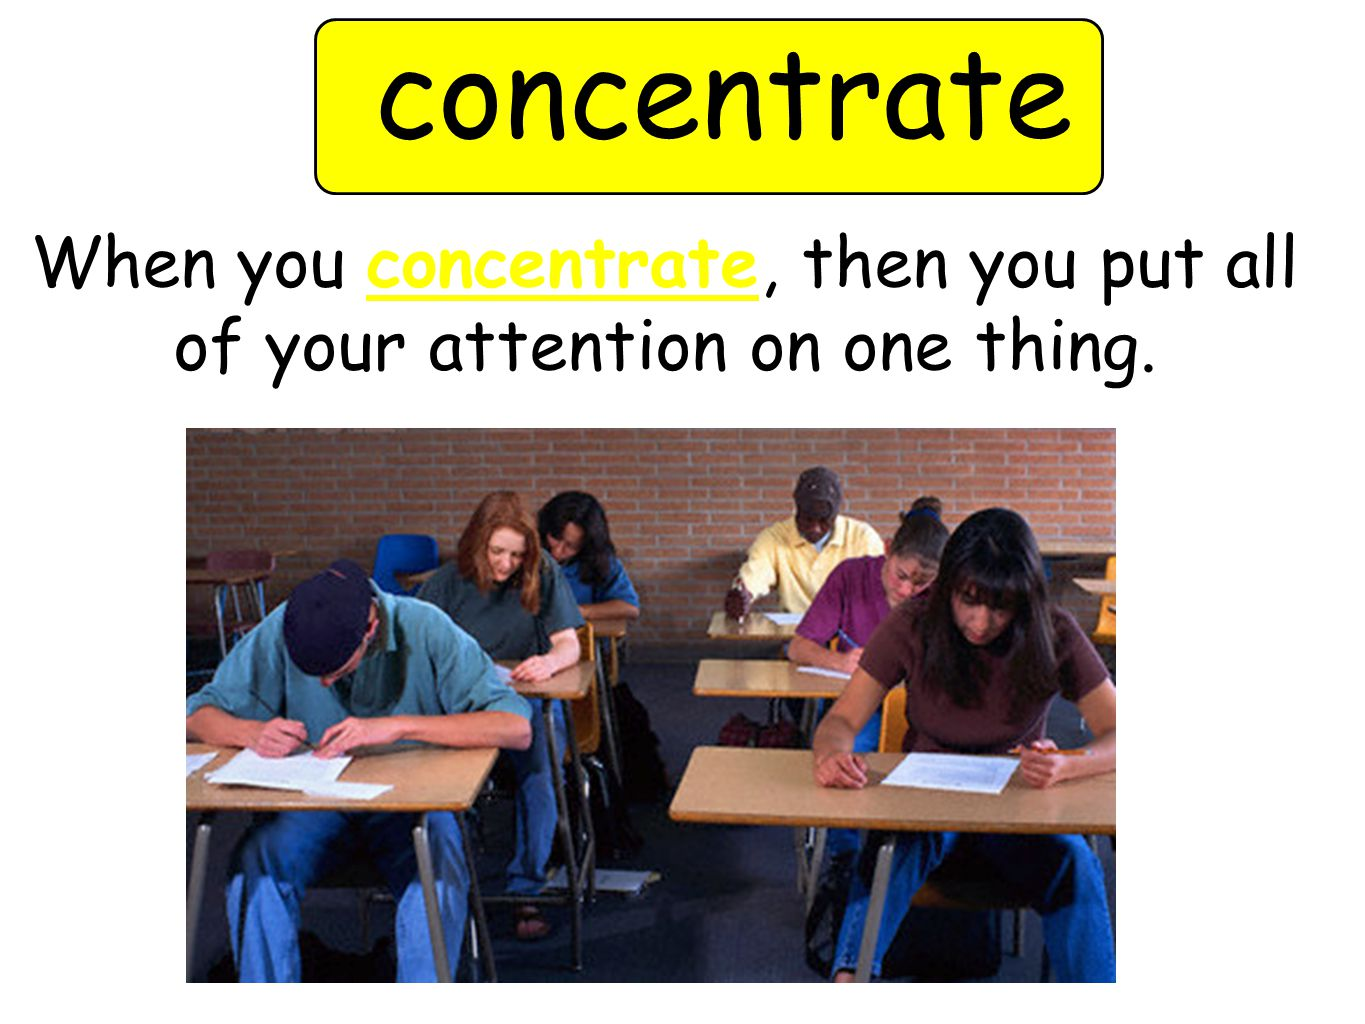 concentrate When you concentrate, then you put all of your attention on one thing.